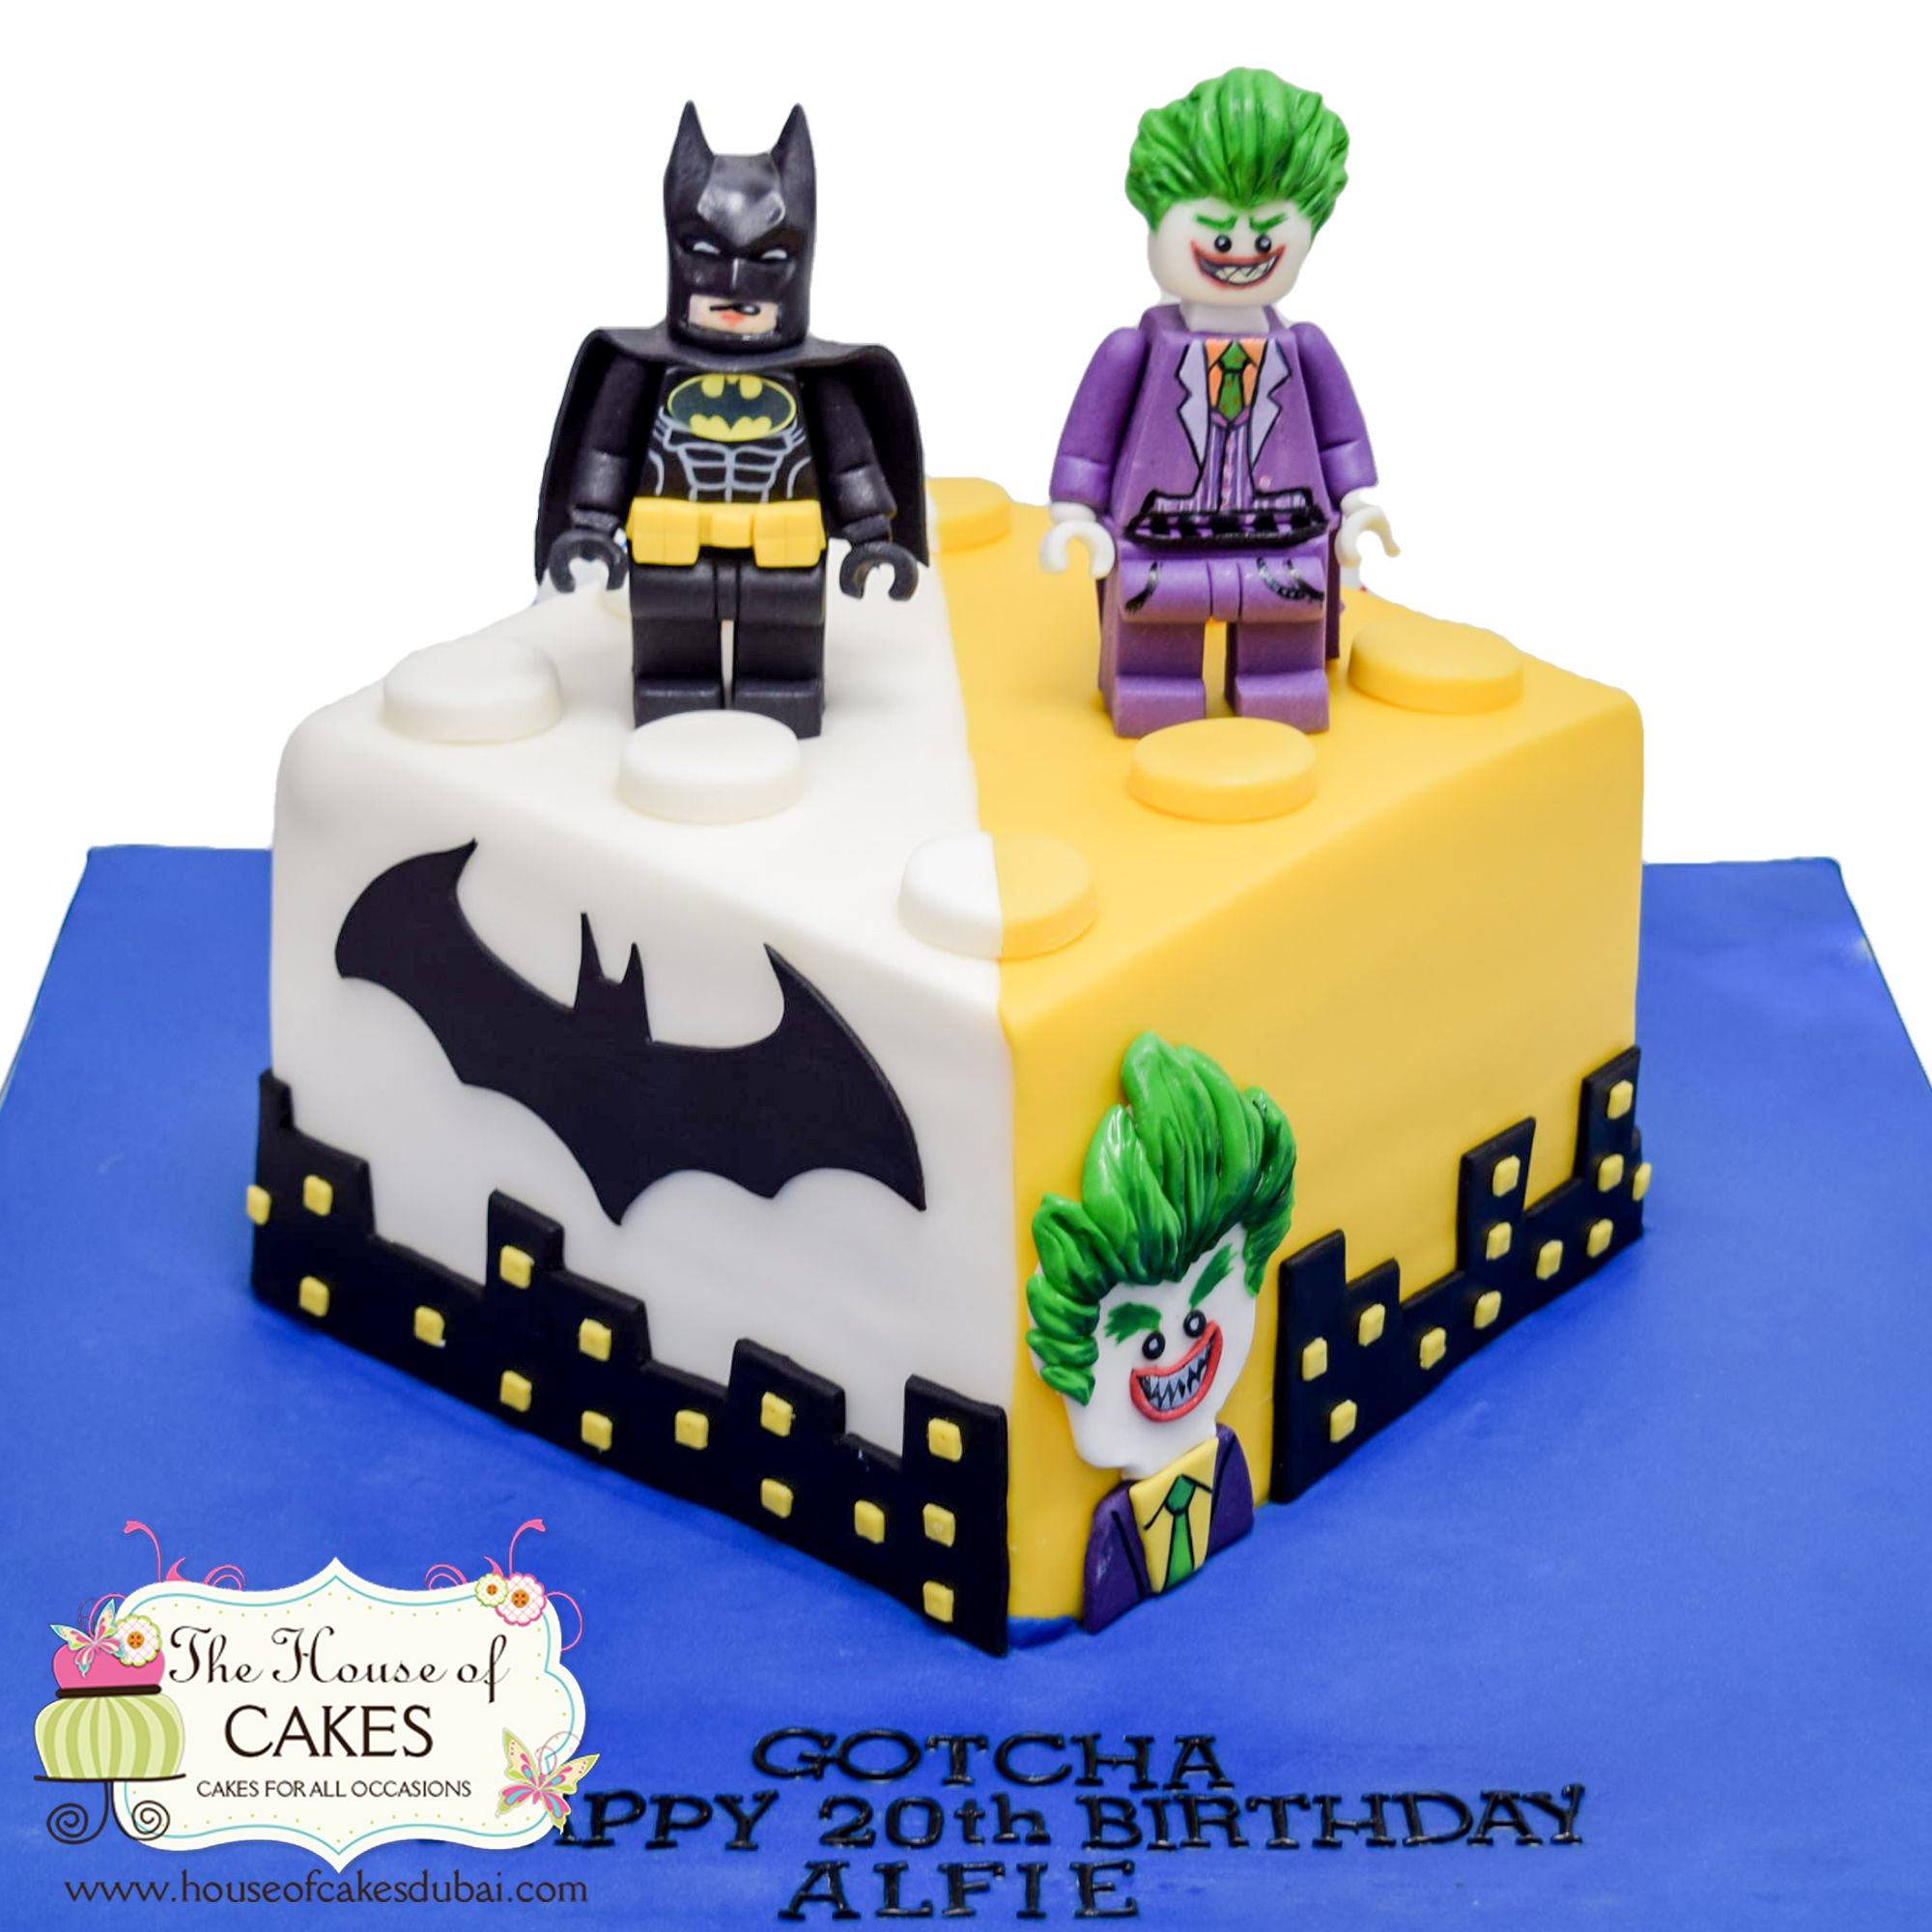 Pin by nicole Wingood on cakes in 2020 Joker cake, Cakes